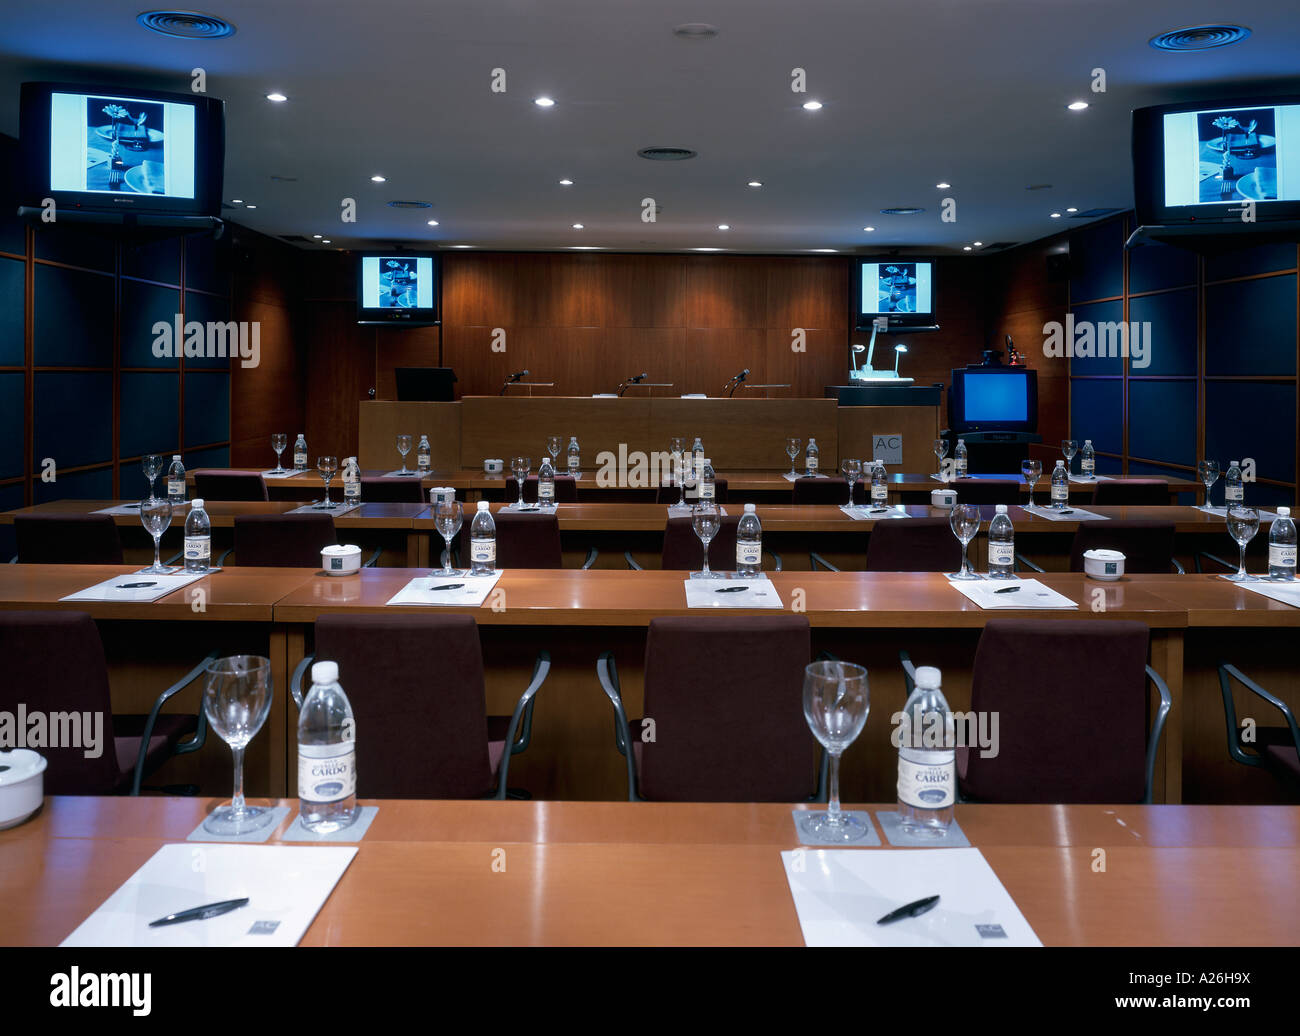 View Of An Elegant Conference Room Stock Photo Alamy - Elegant conference table